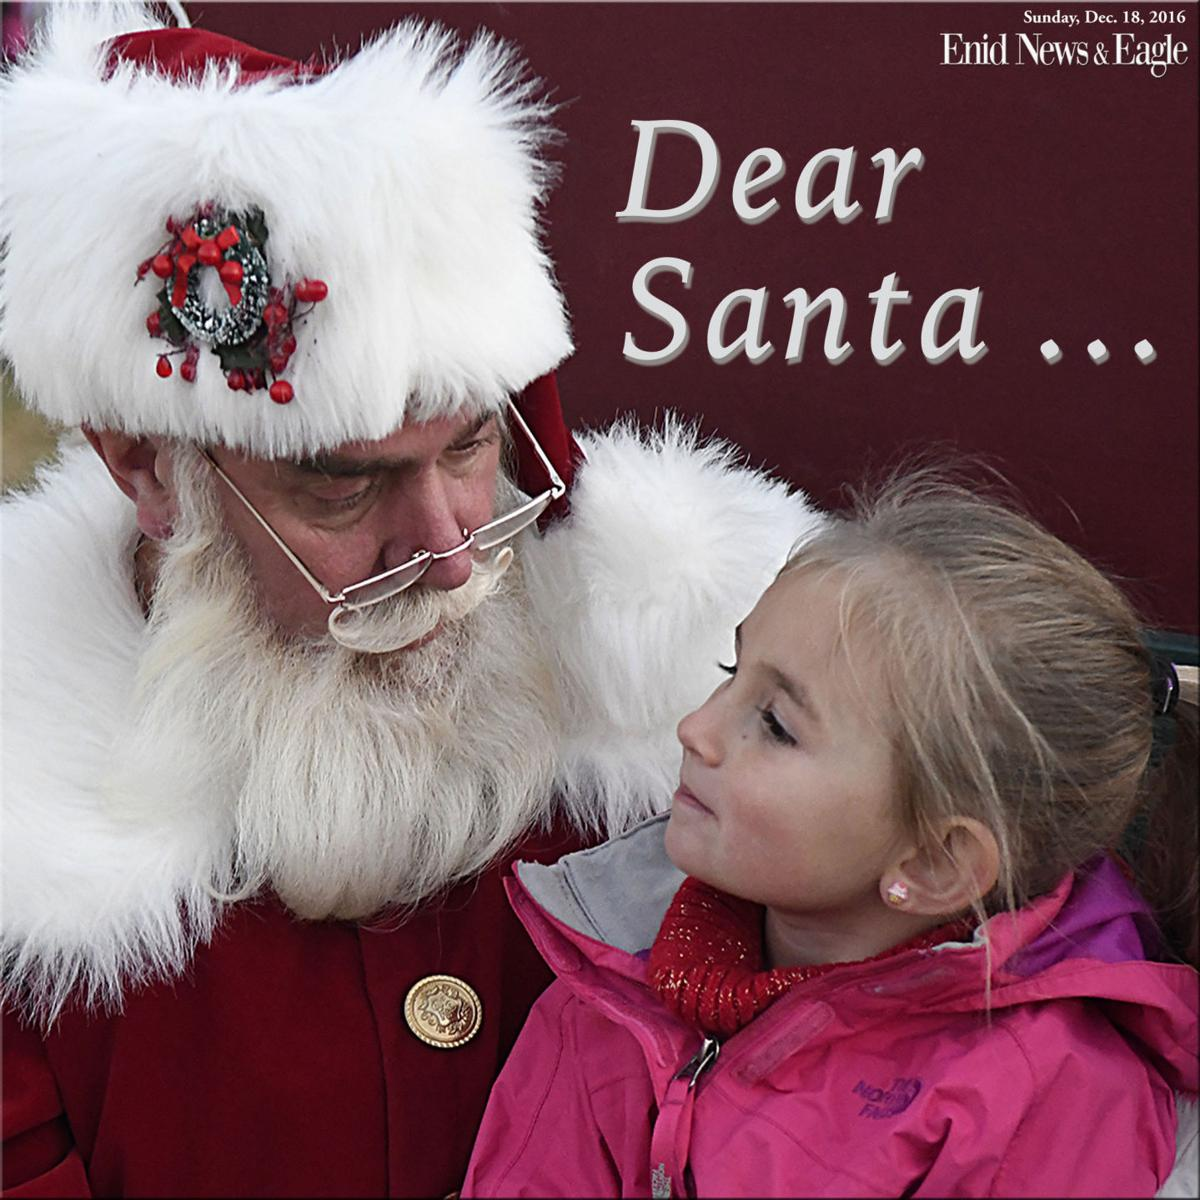 Dear Santa Santa Letters Published For   News  EnidnewsCom